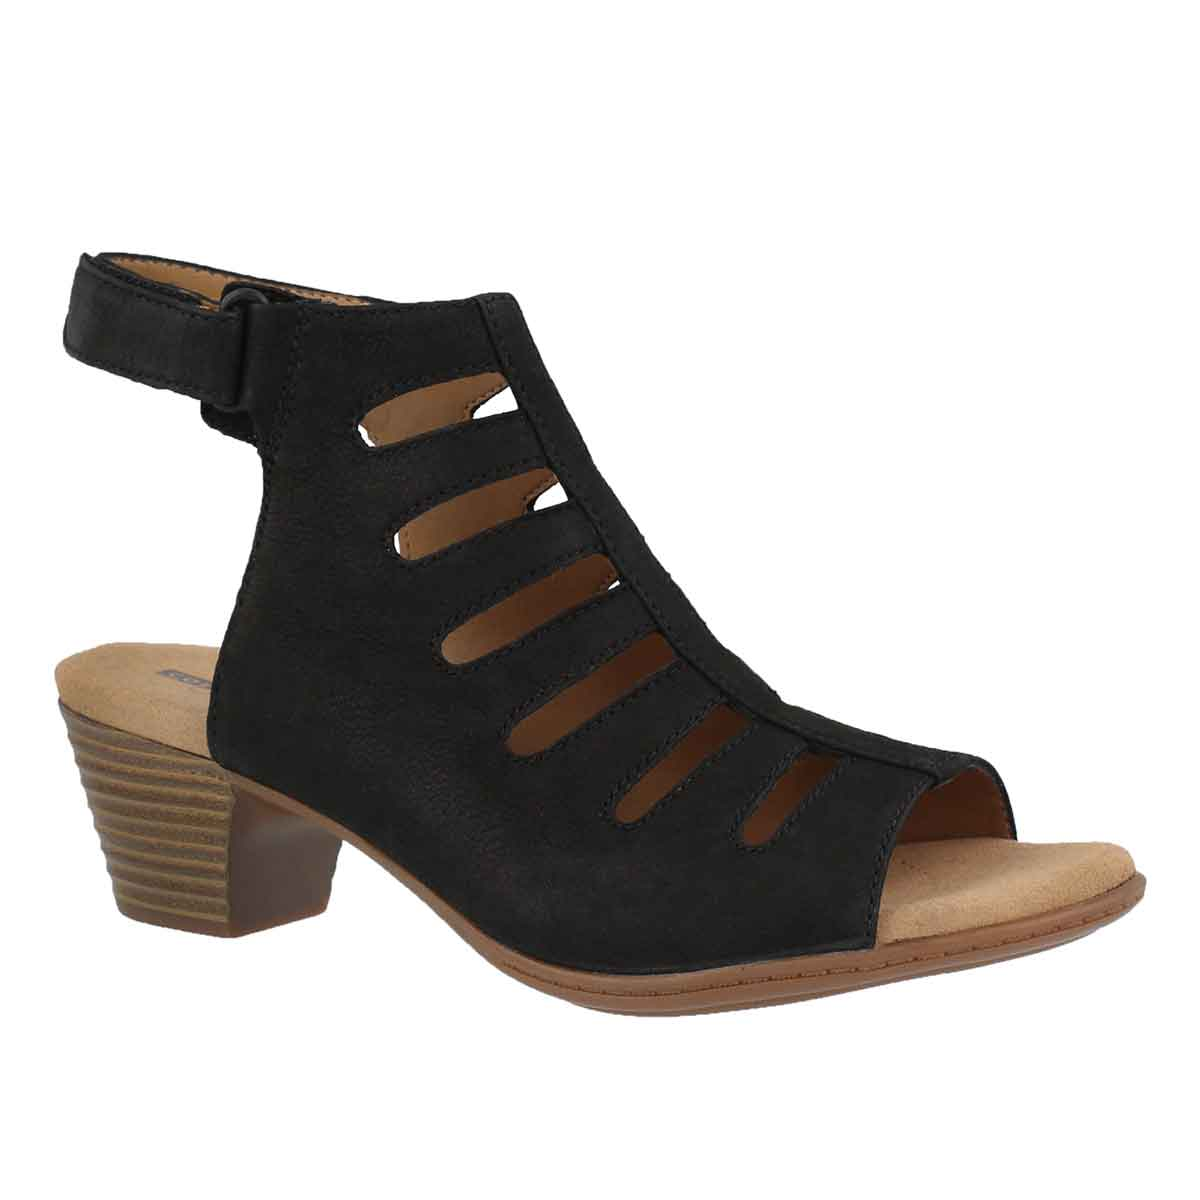 Women's VALARIE SHELLY black dress sandals